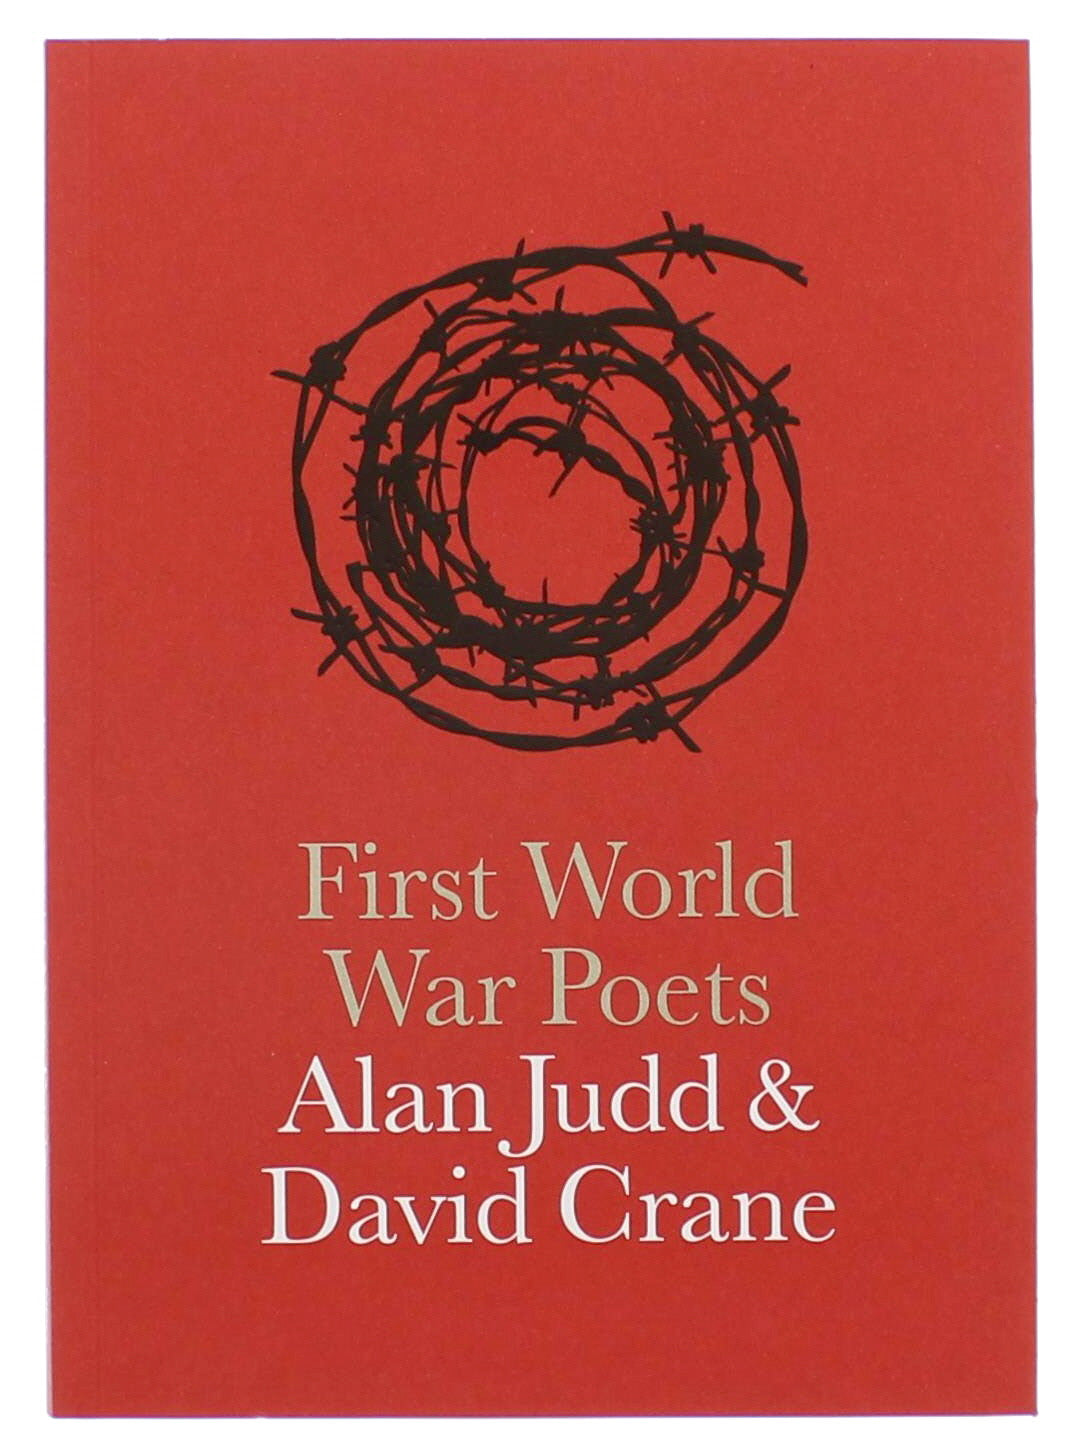 First World War Poets.Paperback